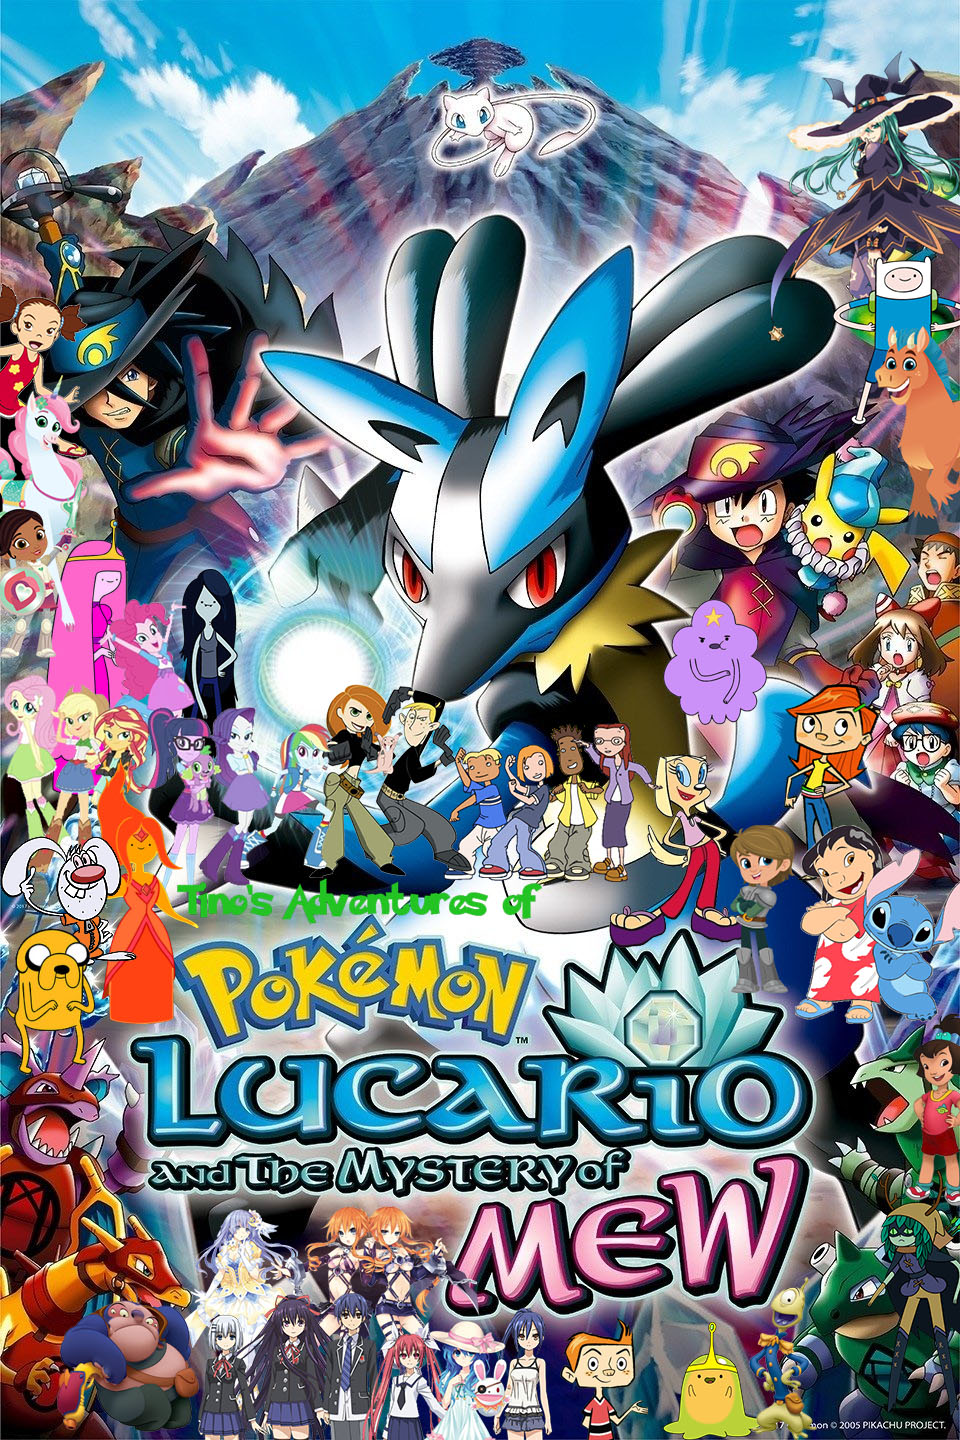 Tino S Adventures Of Pokemon Lucario And The Mystery Of Mew